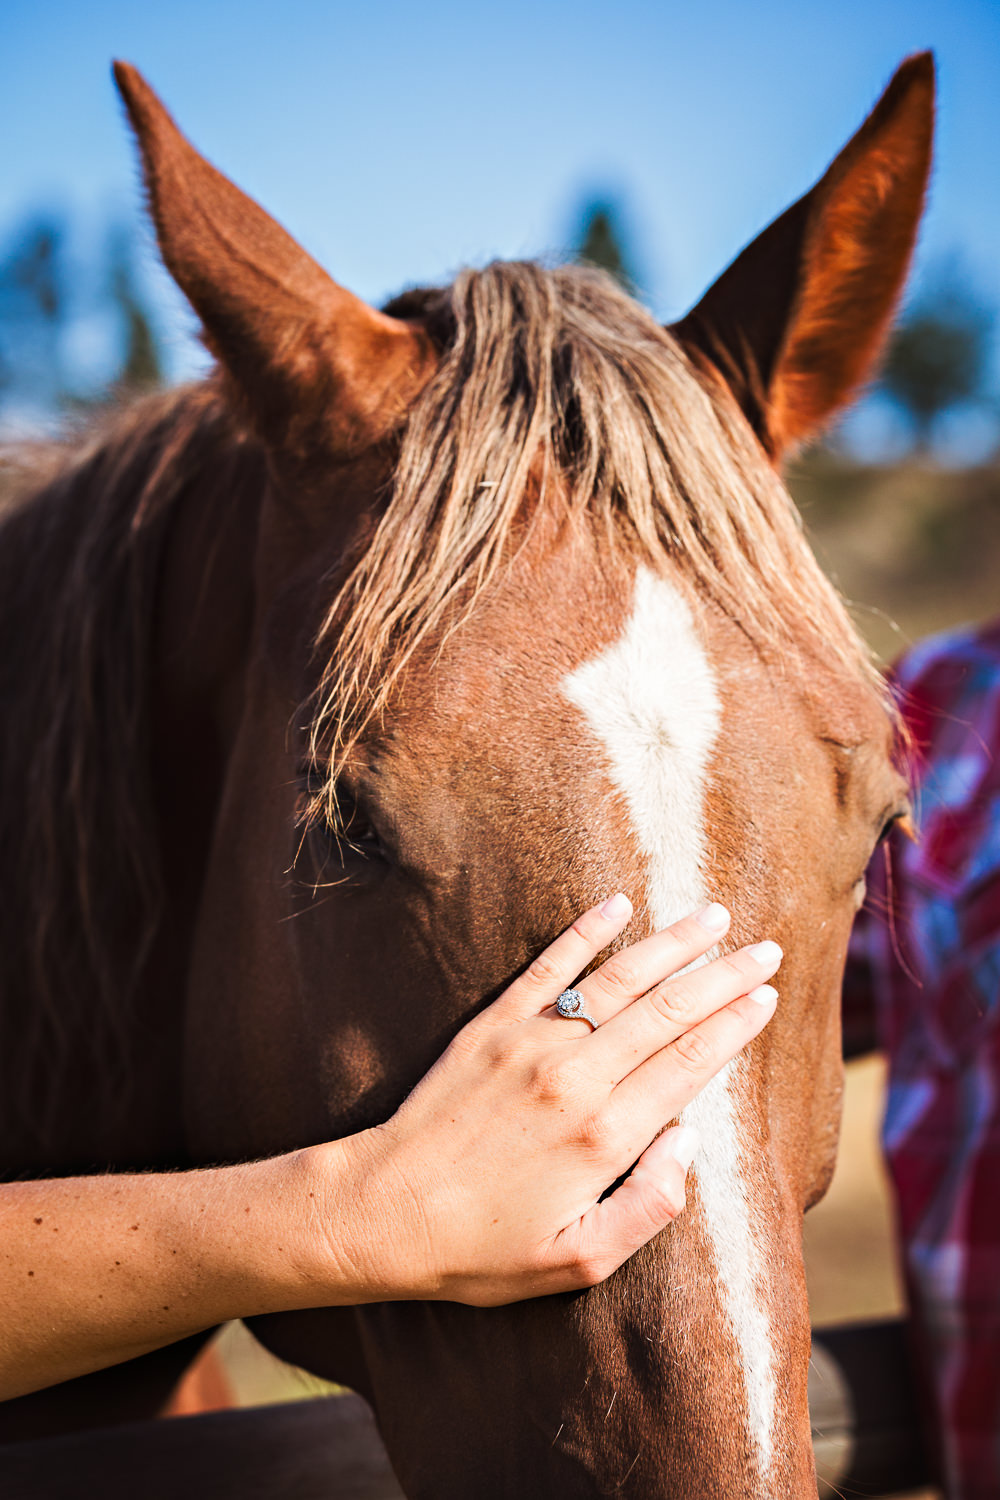 billings-montana-engagement-session-engagement-ring-and-horse.jpg